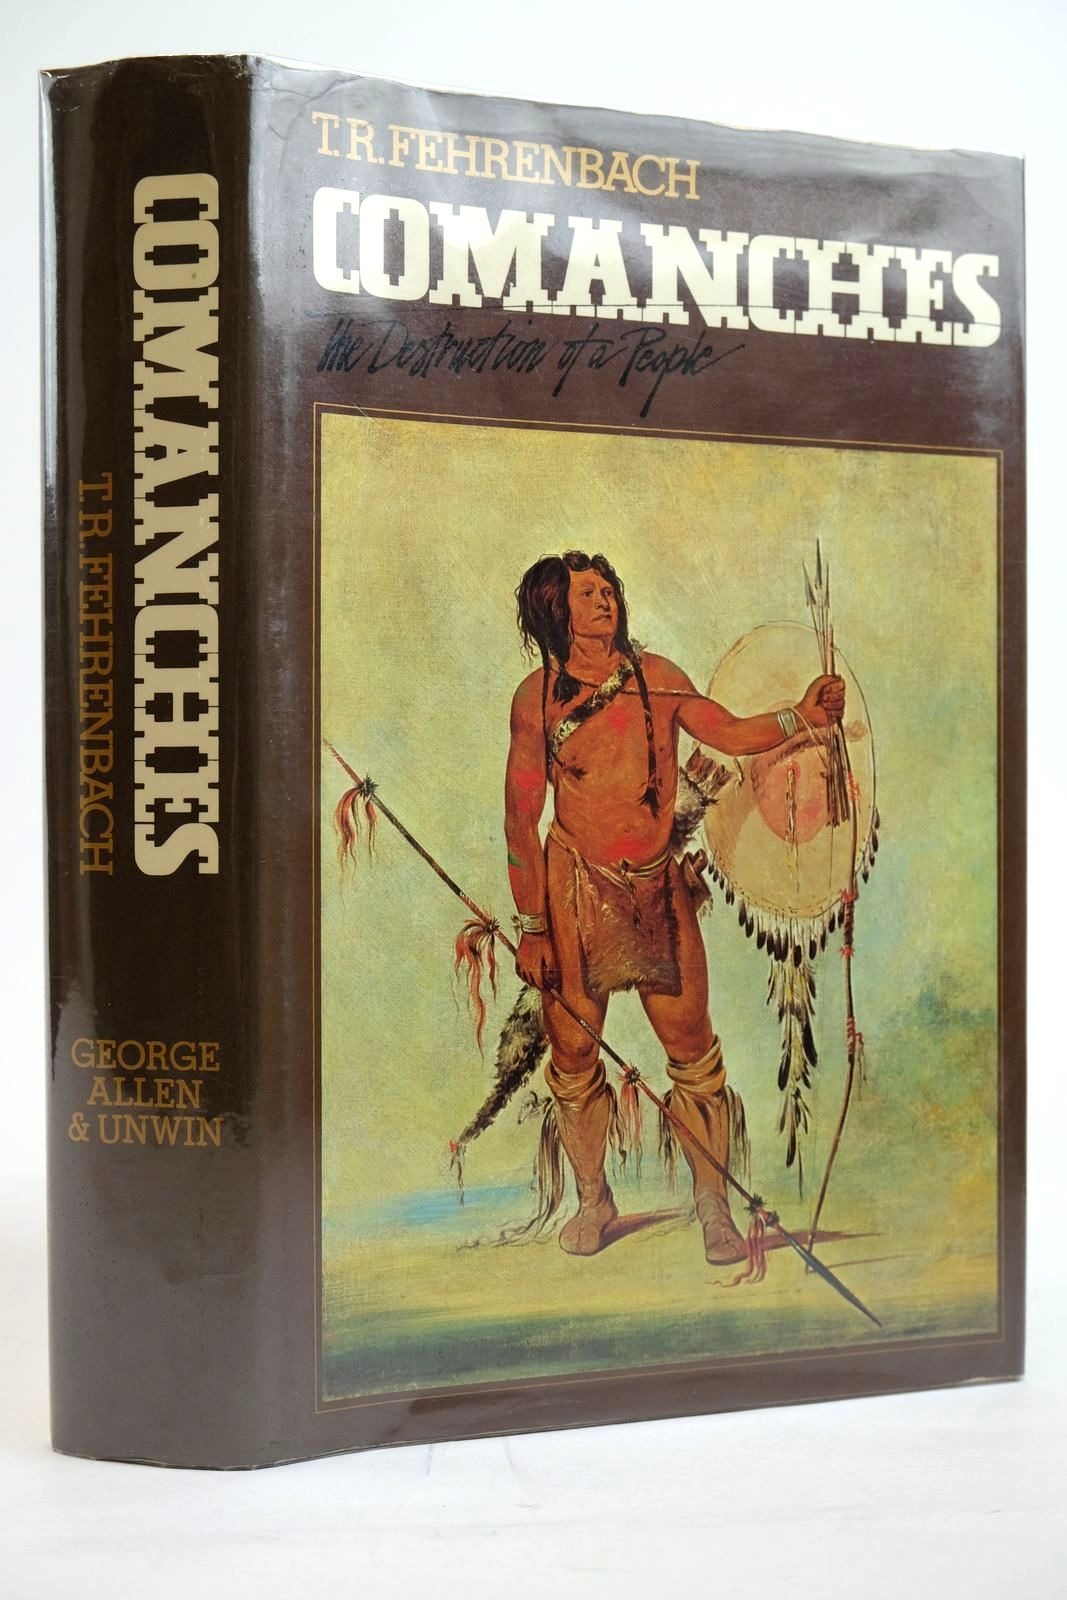 Photo of COMANCHES written by Fehrenbach, T.R. published by George Allen & Unwin Ltd. (STOCK CODE: 2135260)  for sale by Stella & Rose's Books